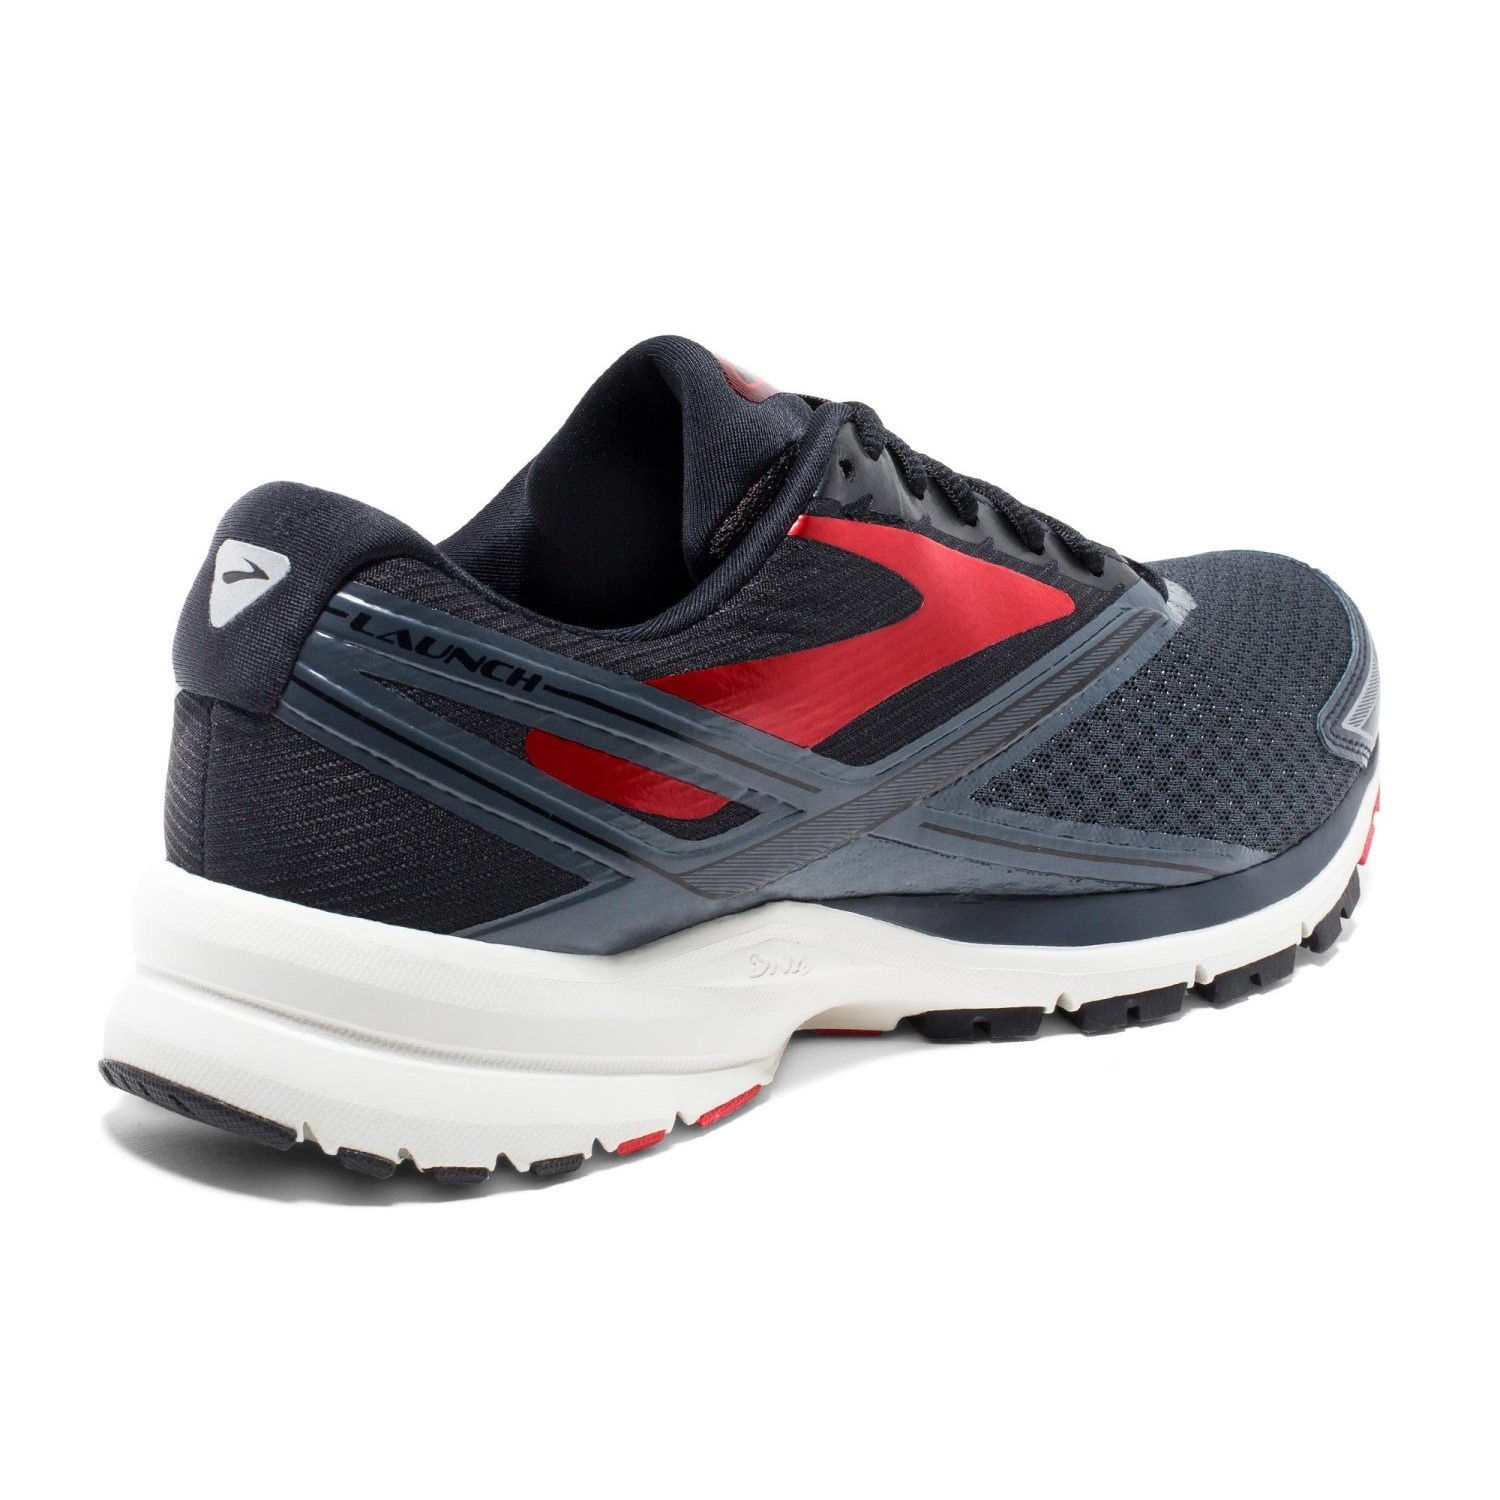 c88aeed05ab Brooks Launch 4 - Mens Running Shoes - Anthracite Black Red